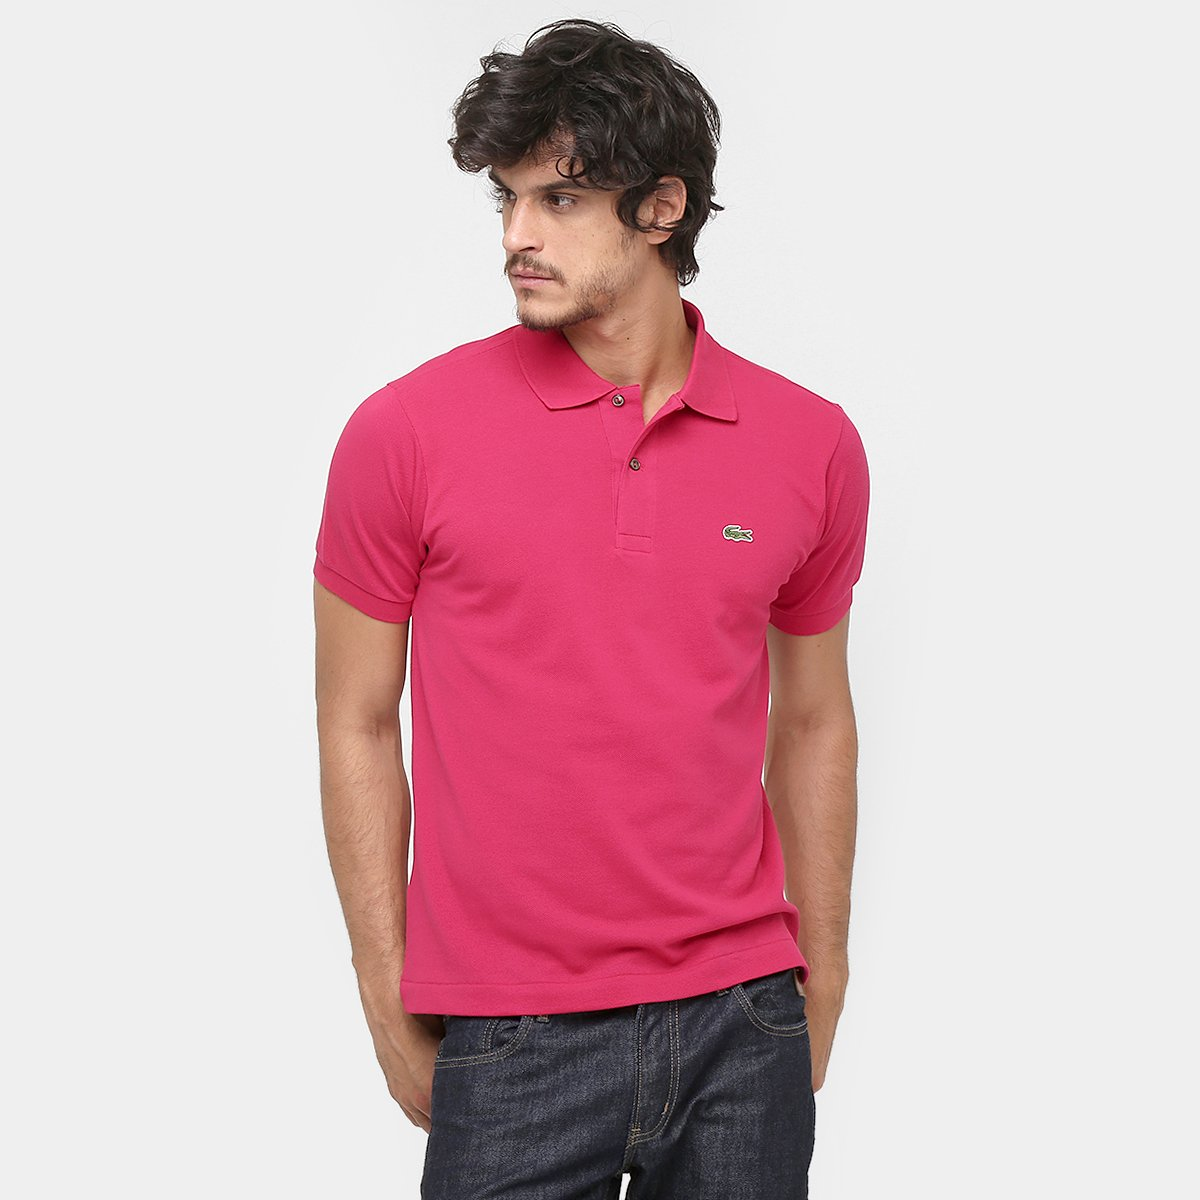 Camisa Polo Lacoste Original Fit Masculina. undefined c12d97c9e8